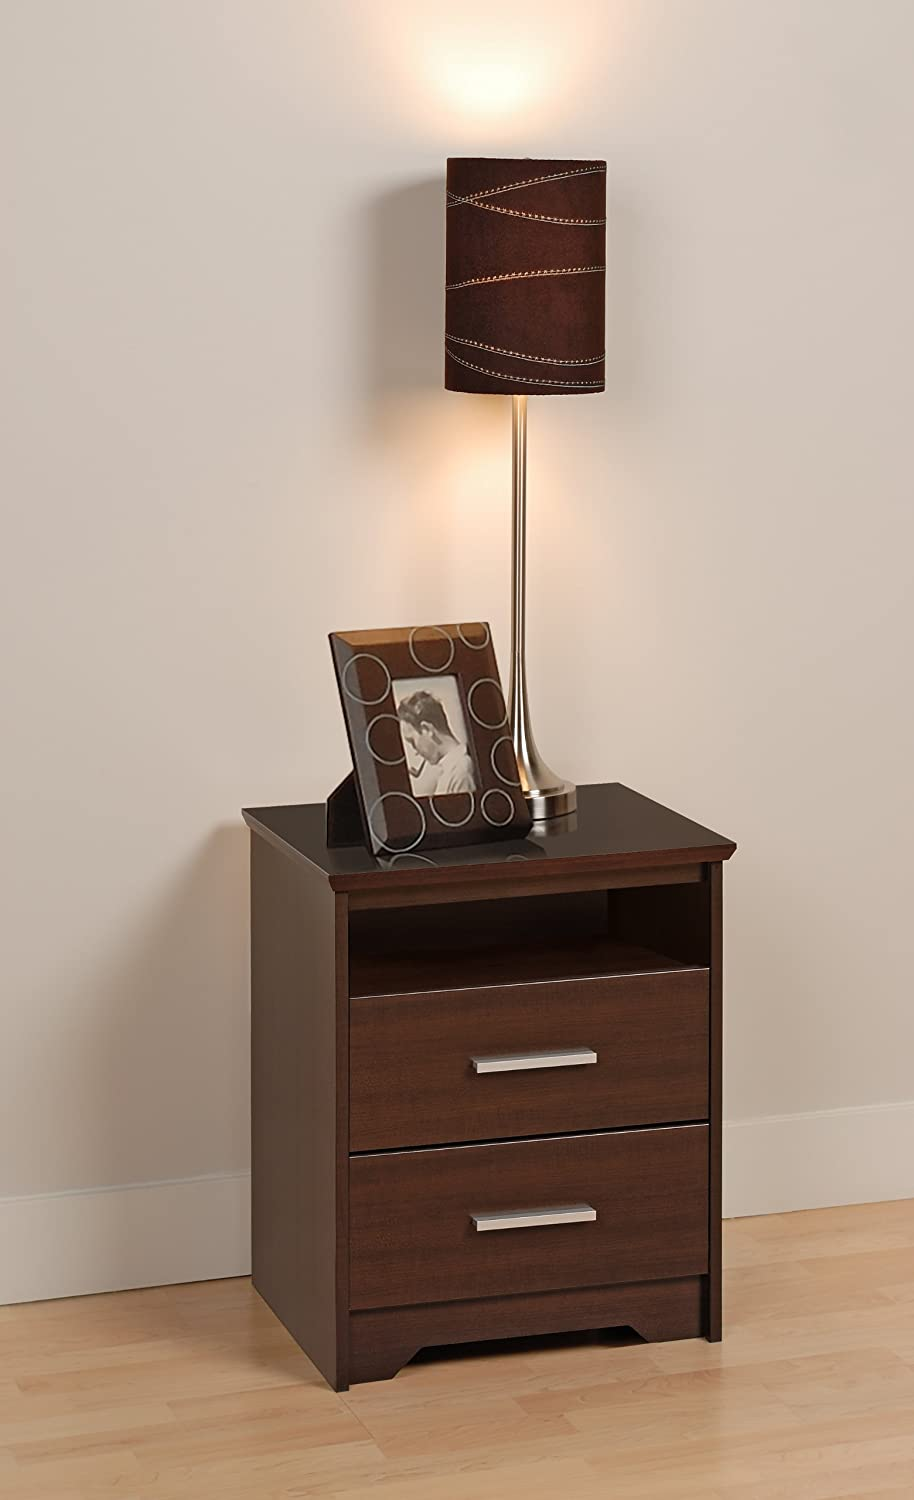 Prepac BCH-2250 Coal Harbor 2-Drawer Tall Nightstand with Open Shelf, Black Prepac Manufacturing